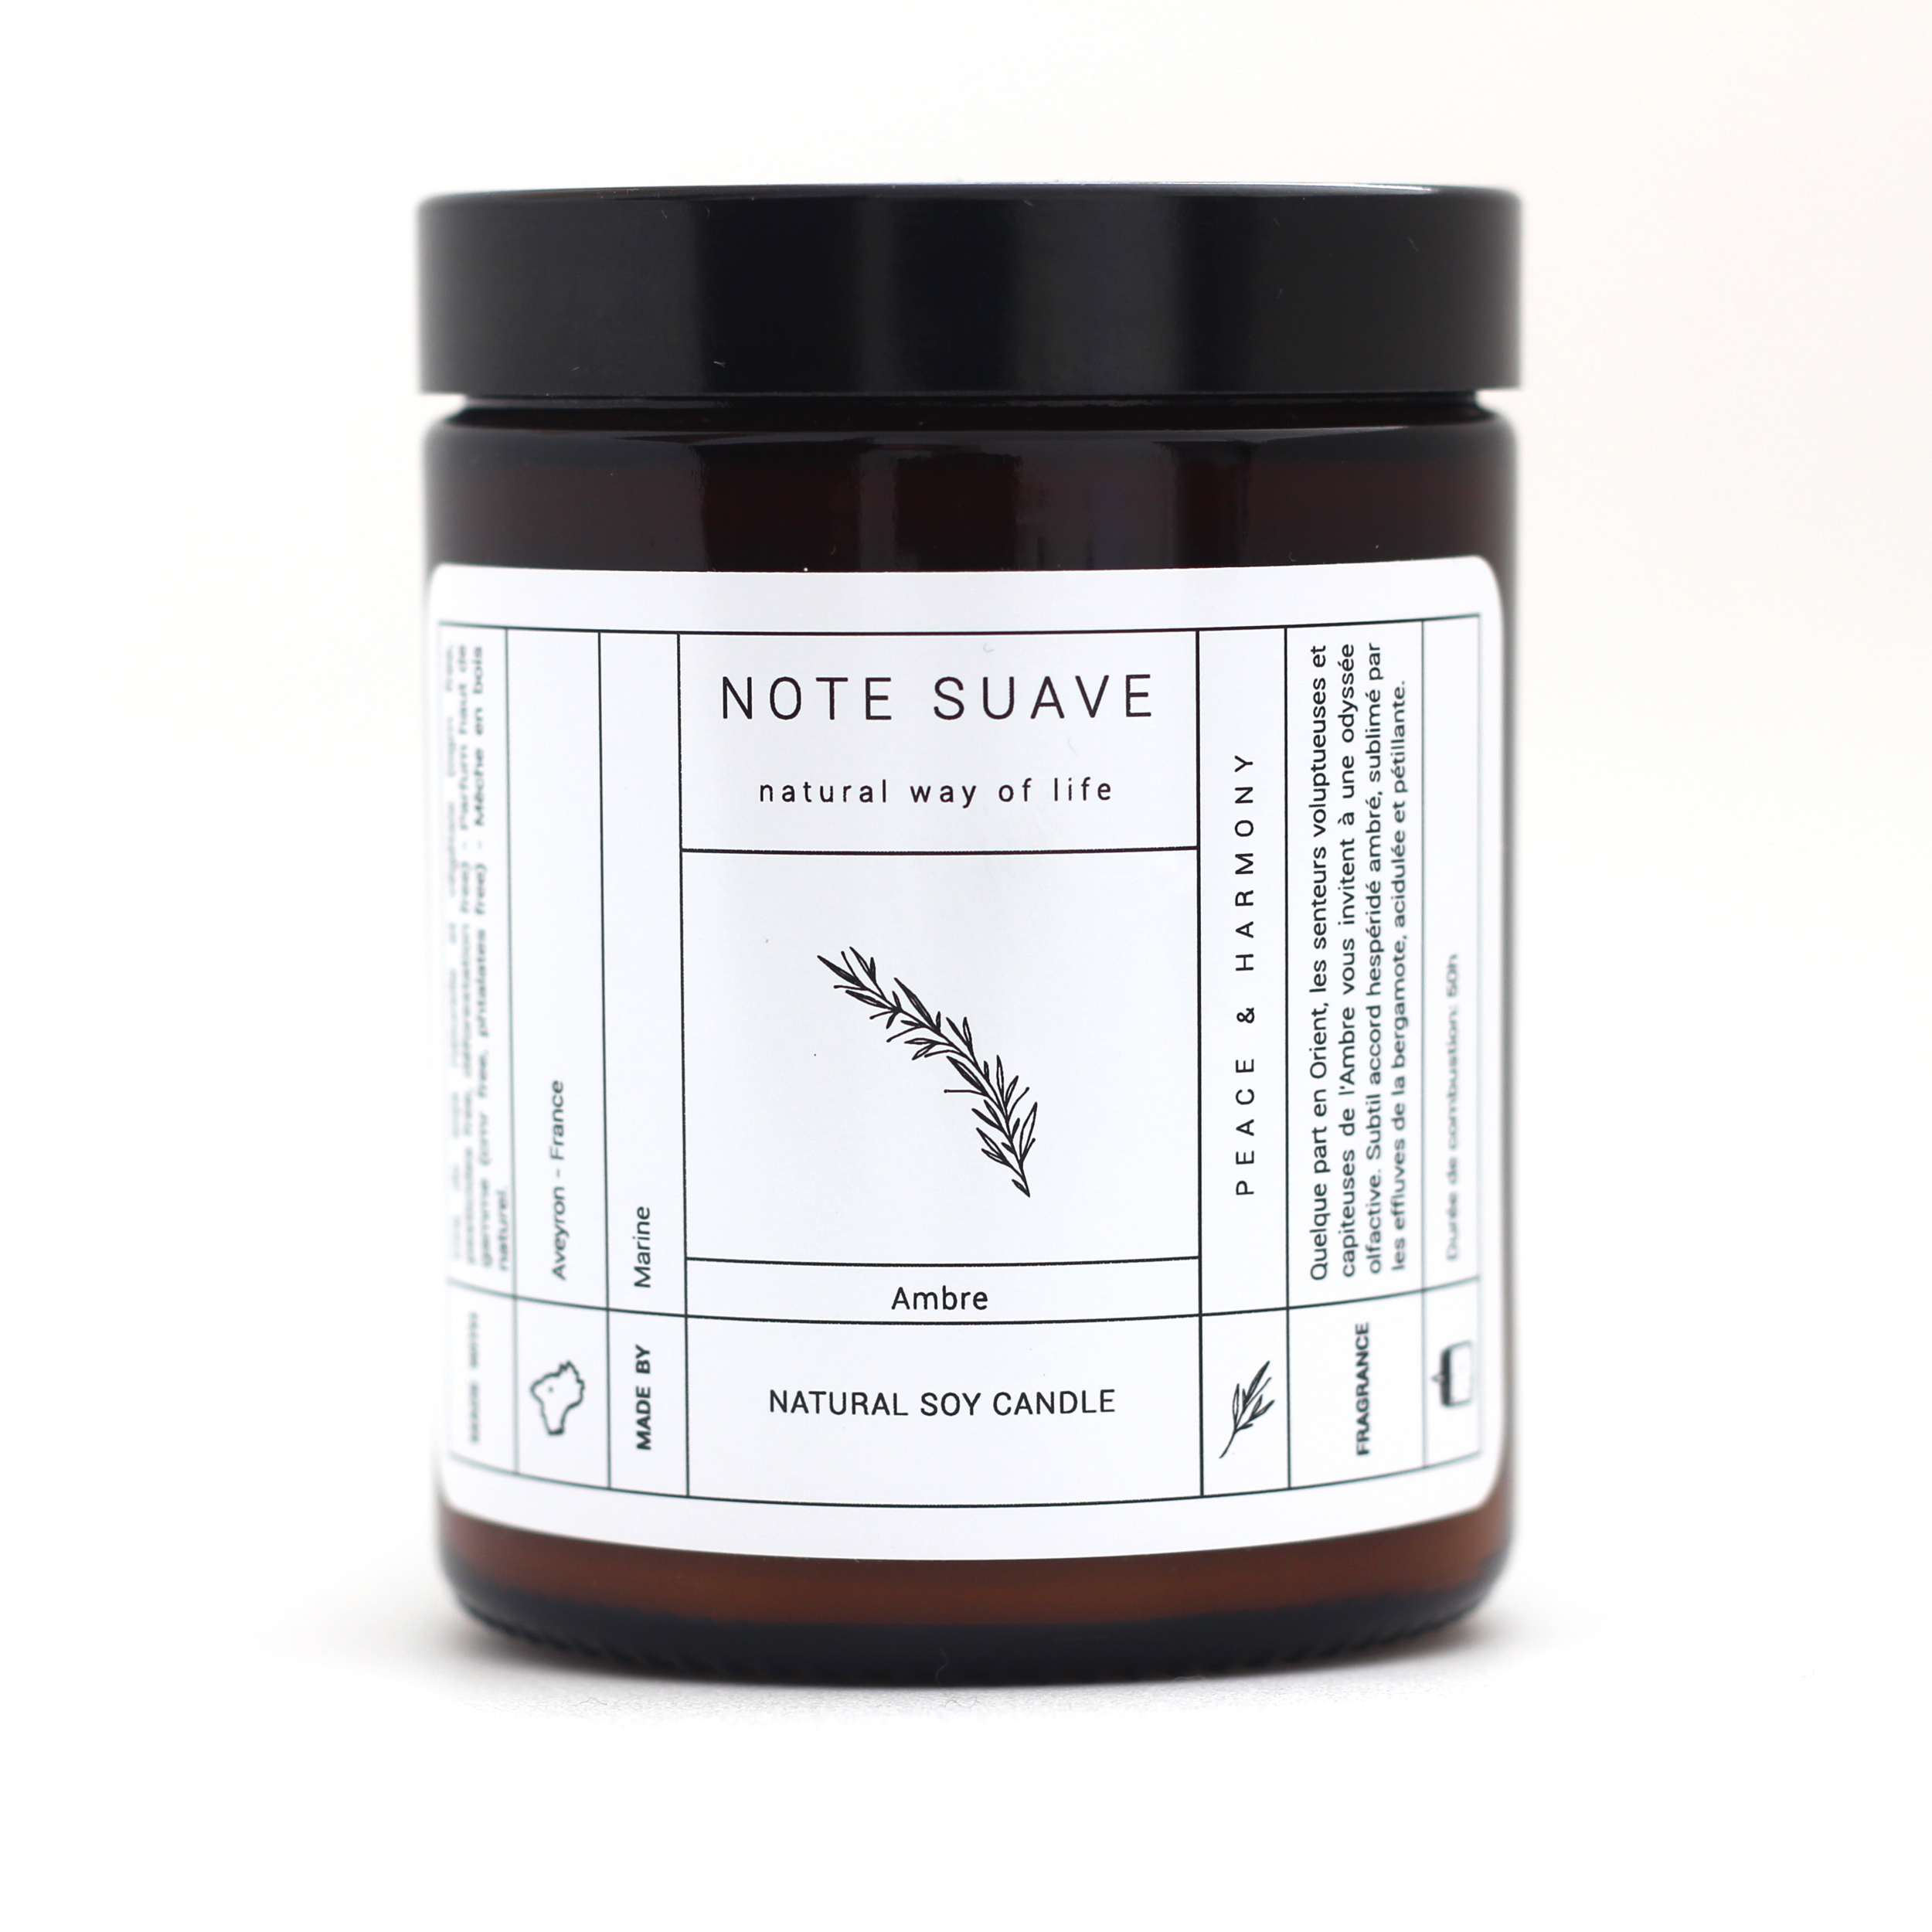 Apothicaire - Bougie-naturelle-madeinFrance-Note suave